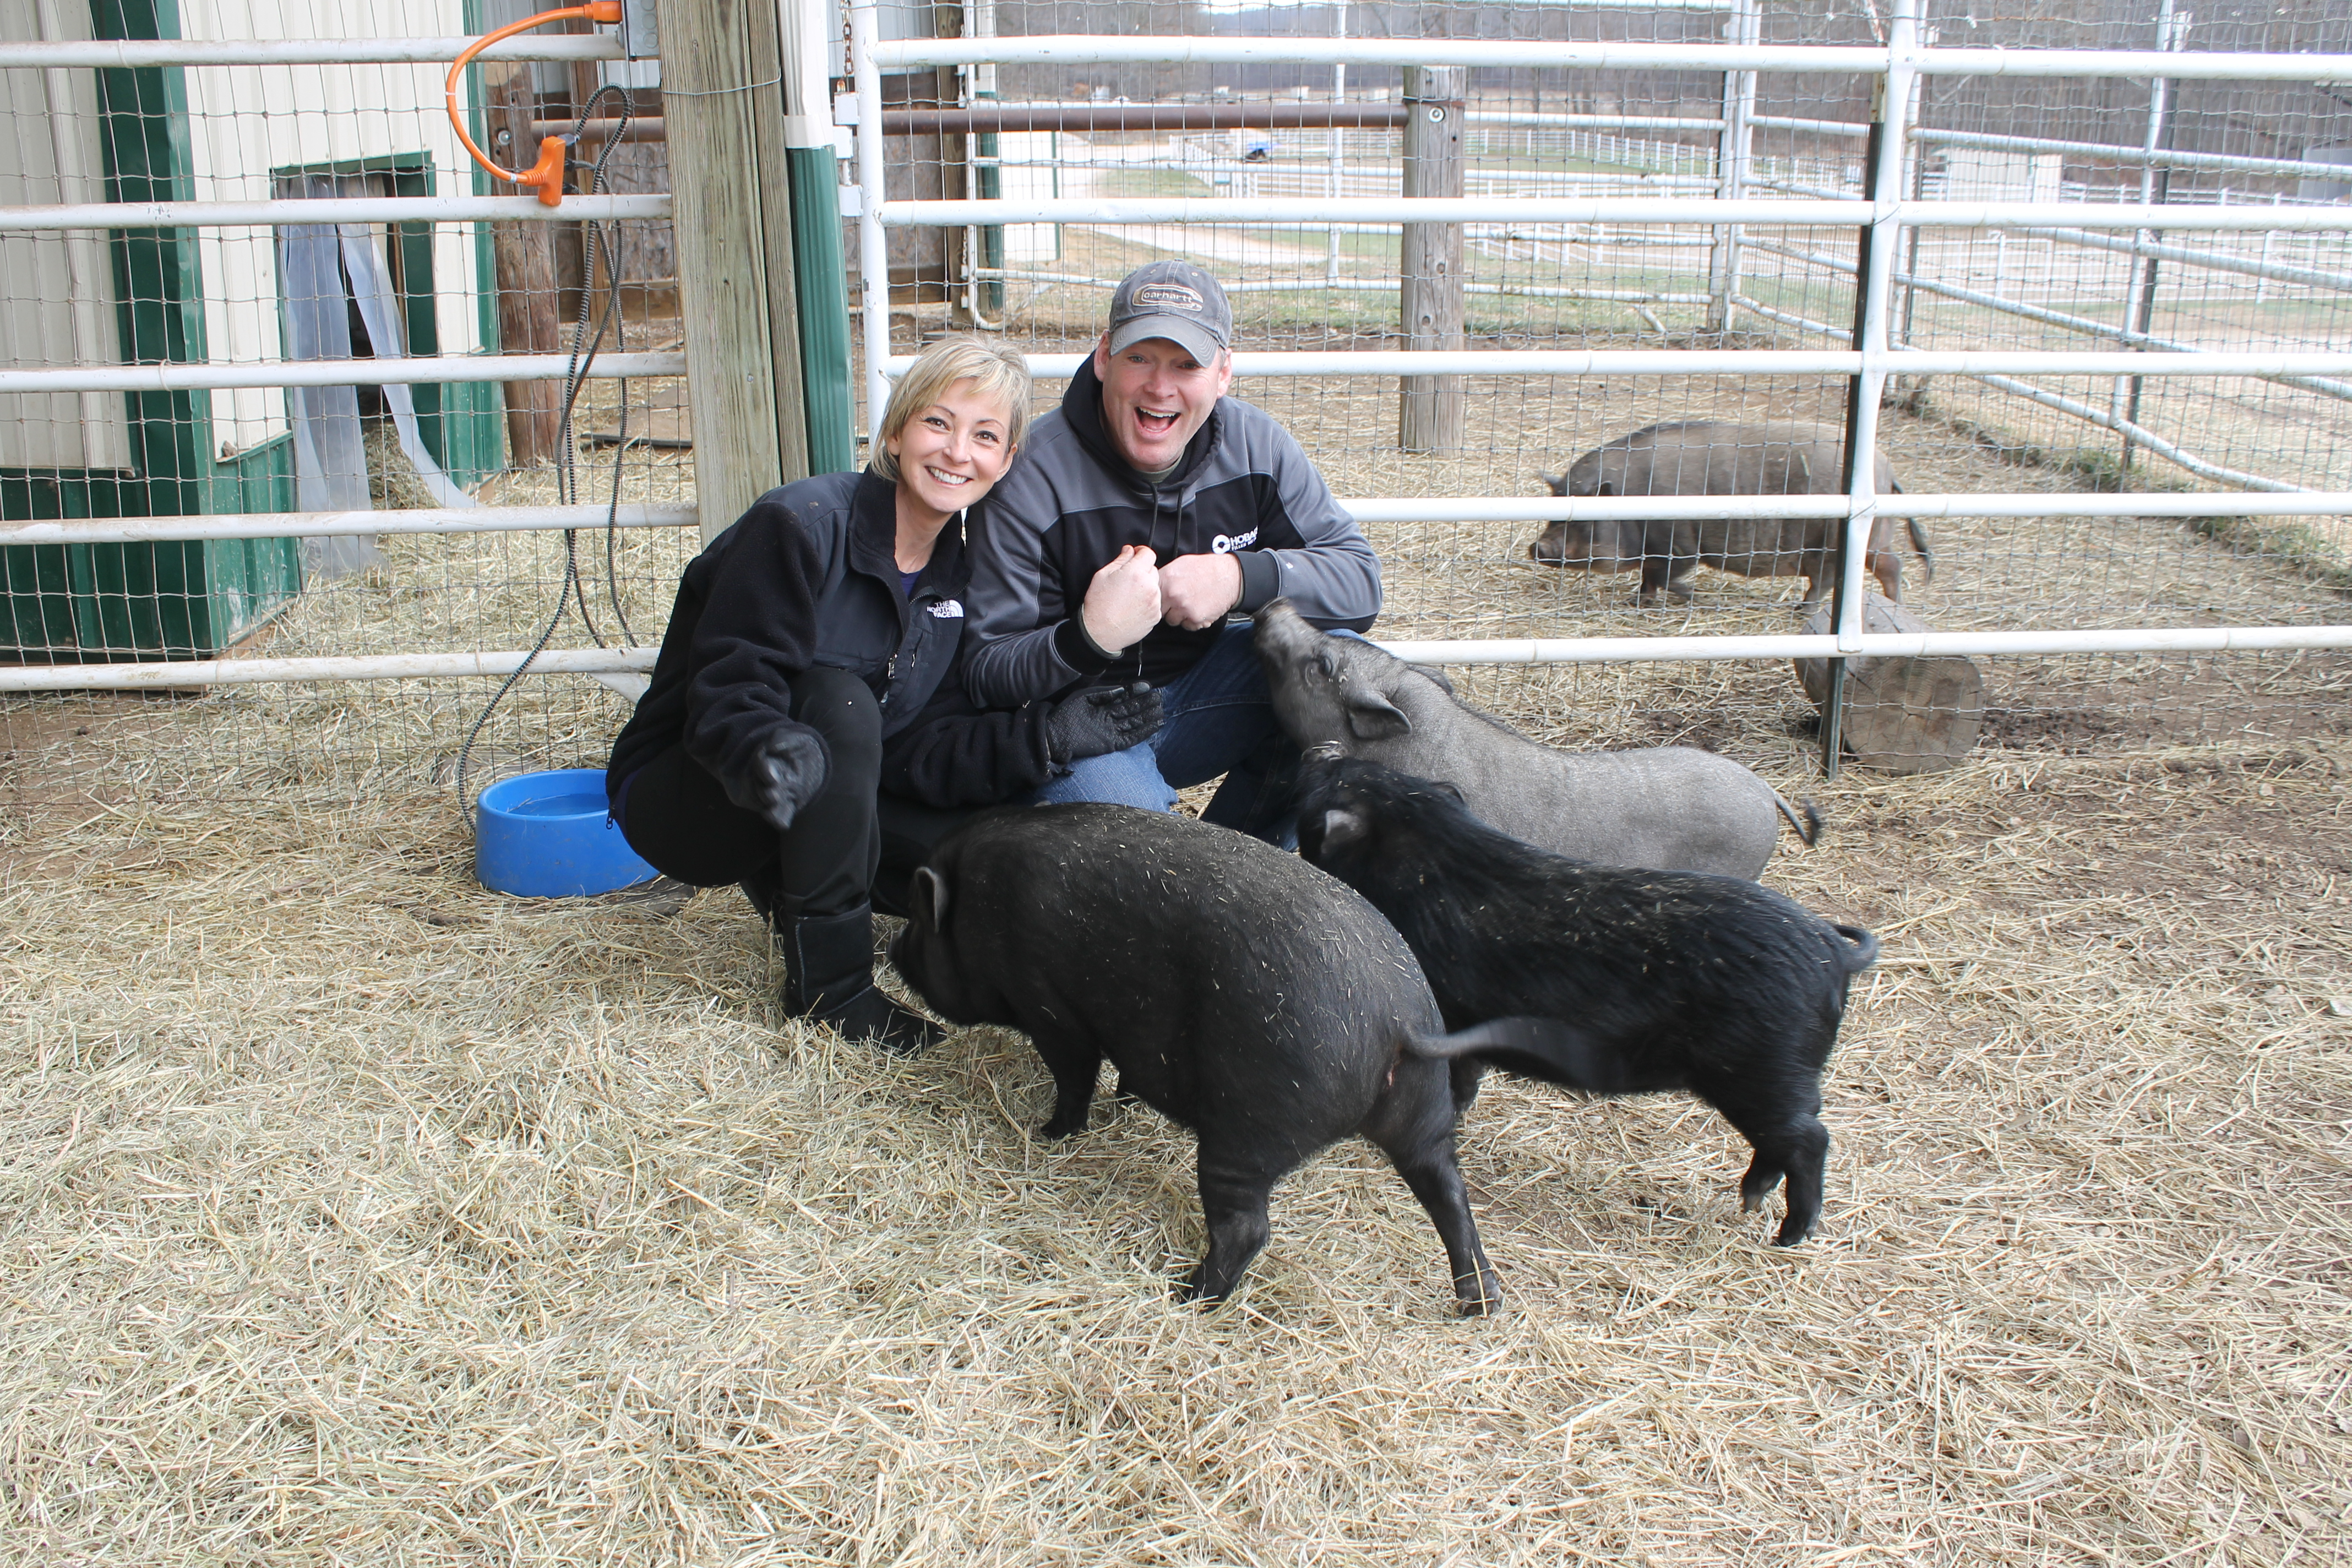 Potbellied pigs are some of the most often surrendered animals to Longmeadow